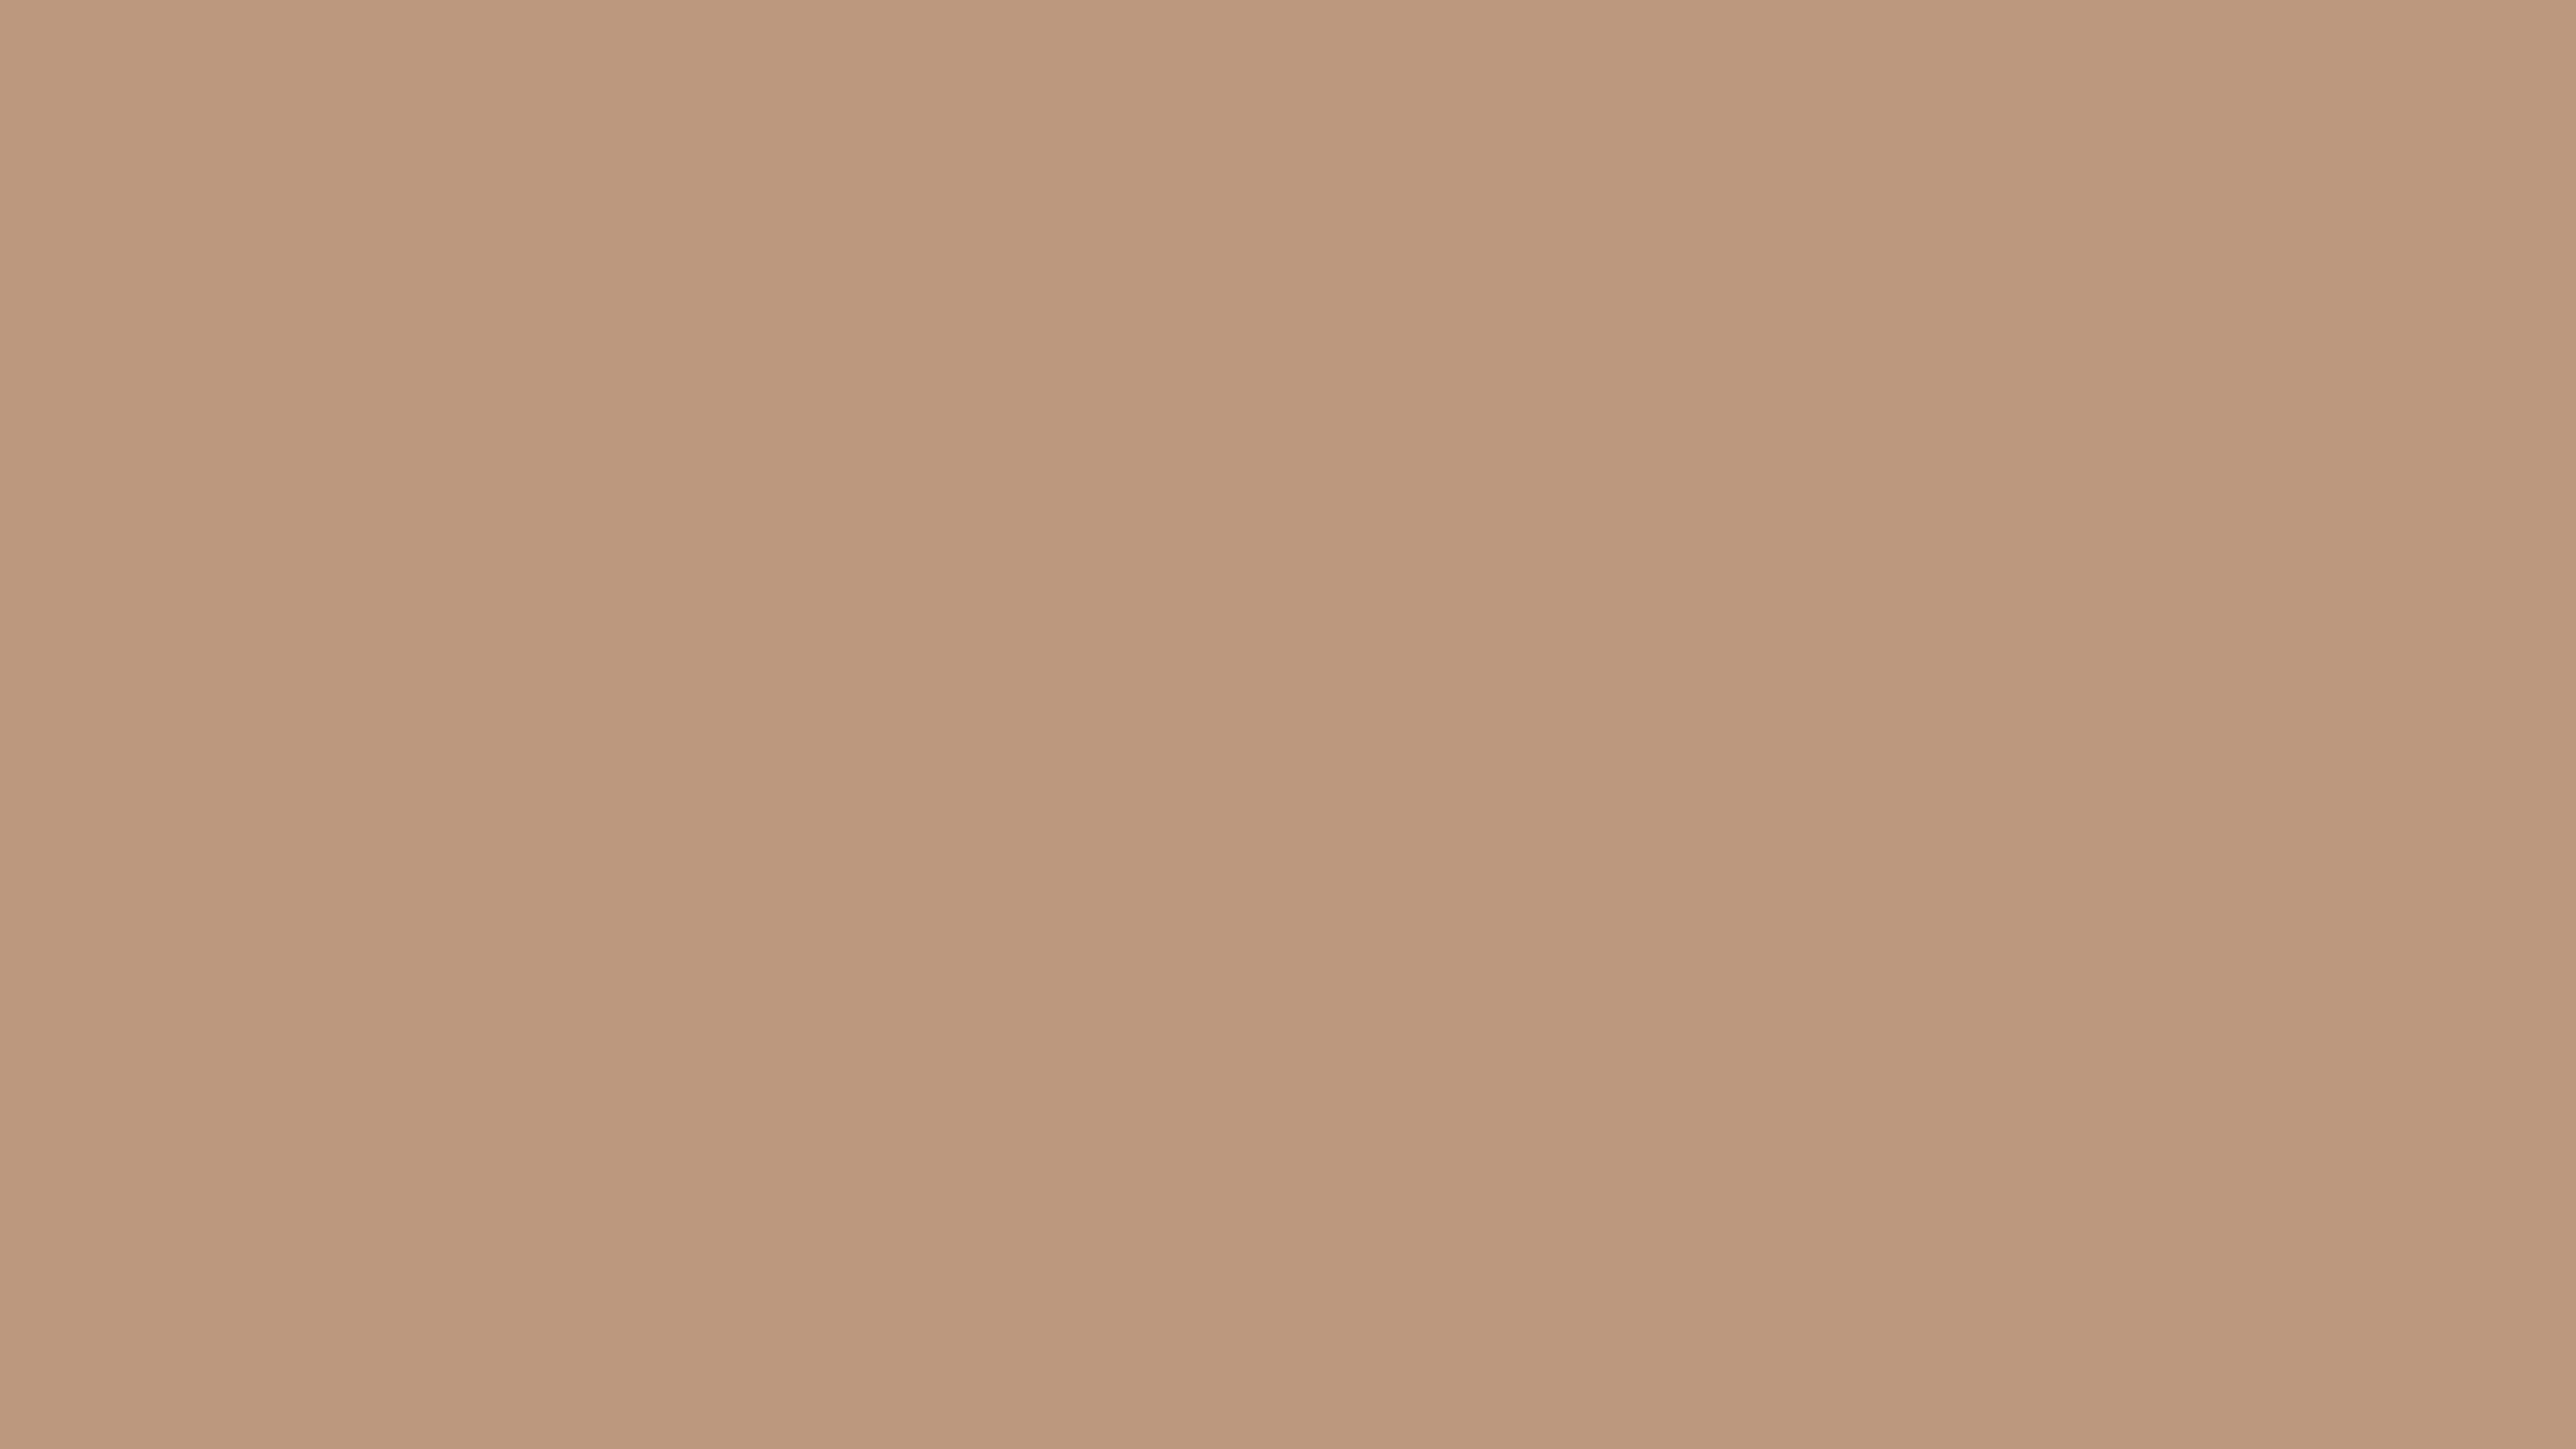 Pale taupe solid color background wallpaper 5120x2880 for Taupe color